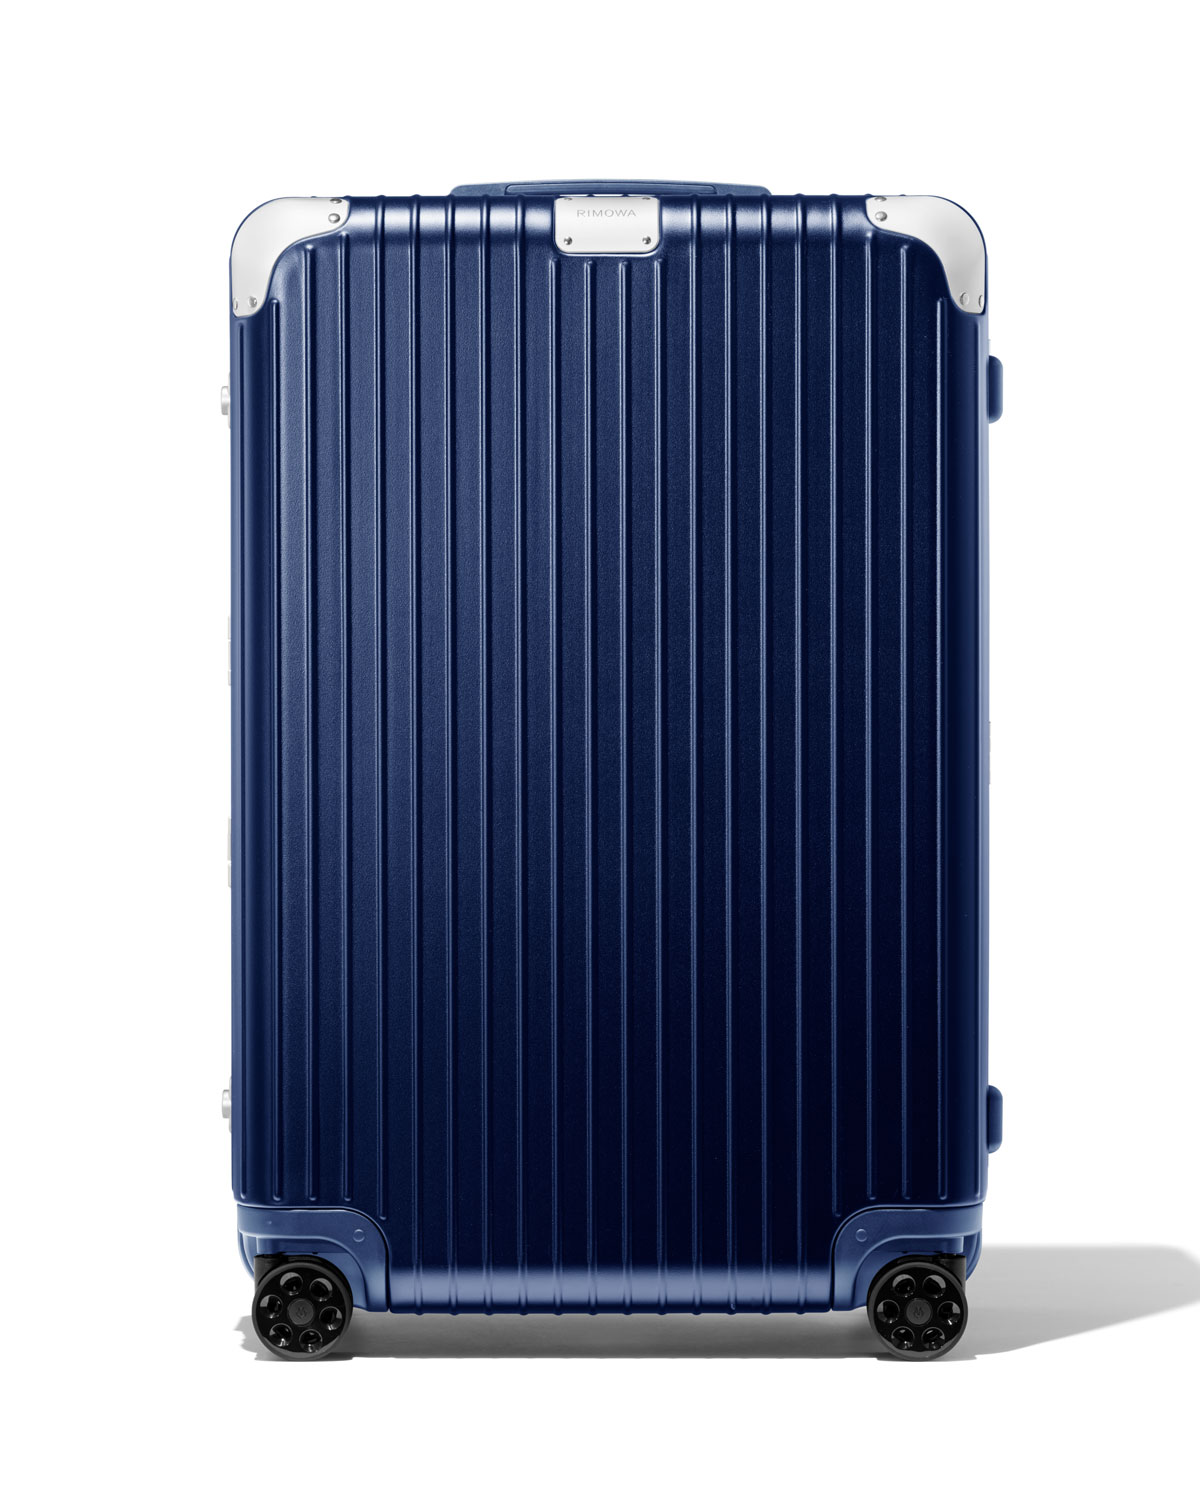 Rimowa Bags HYBRID CHECK-IN L SPINNER LUGGAGE